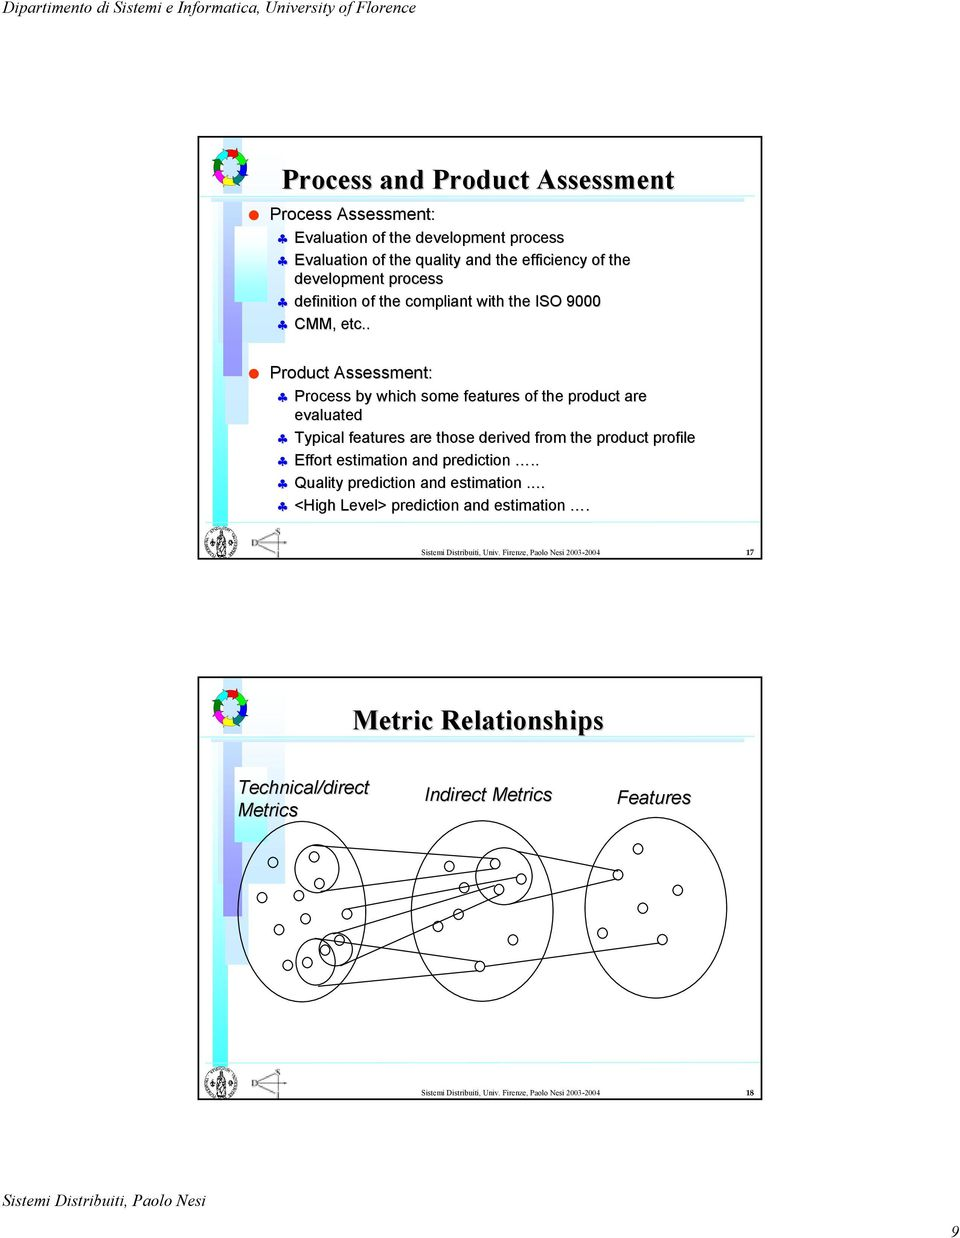 . Product Assessment: Process by which some features of the product are evaluated Typical features are those derived from the product profile Effort estimation and